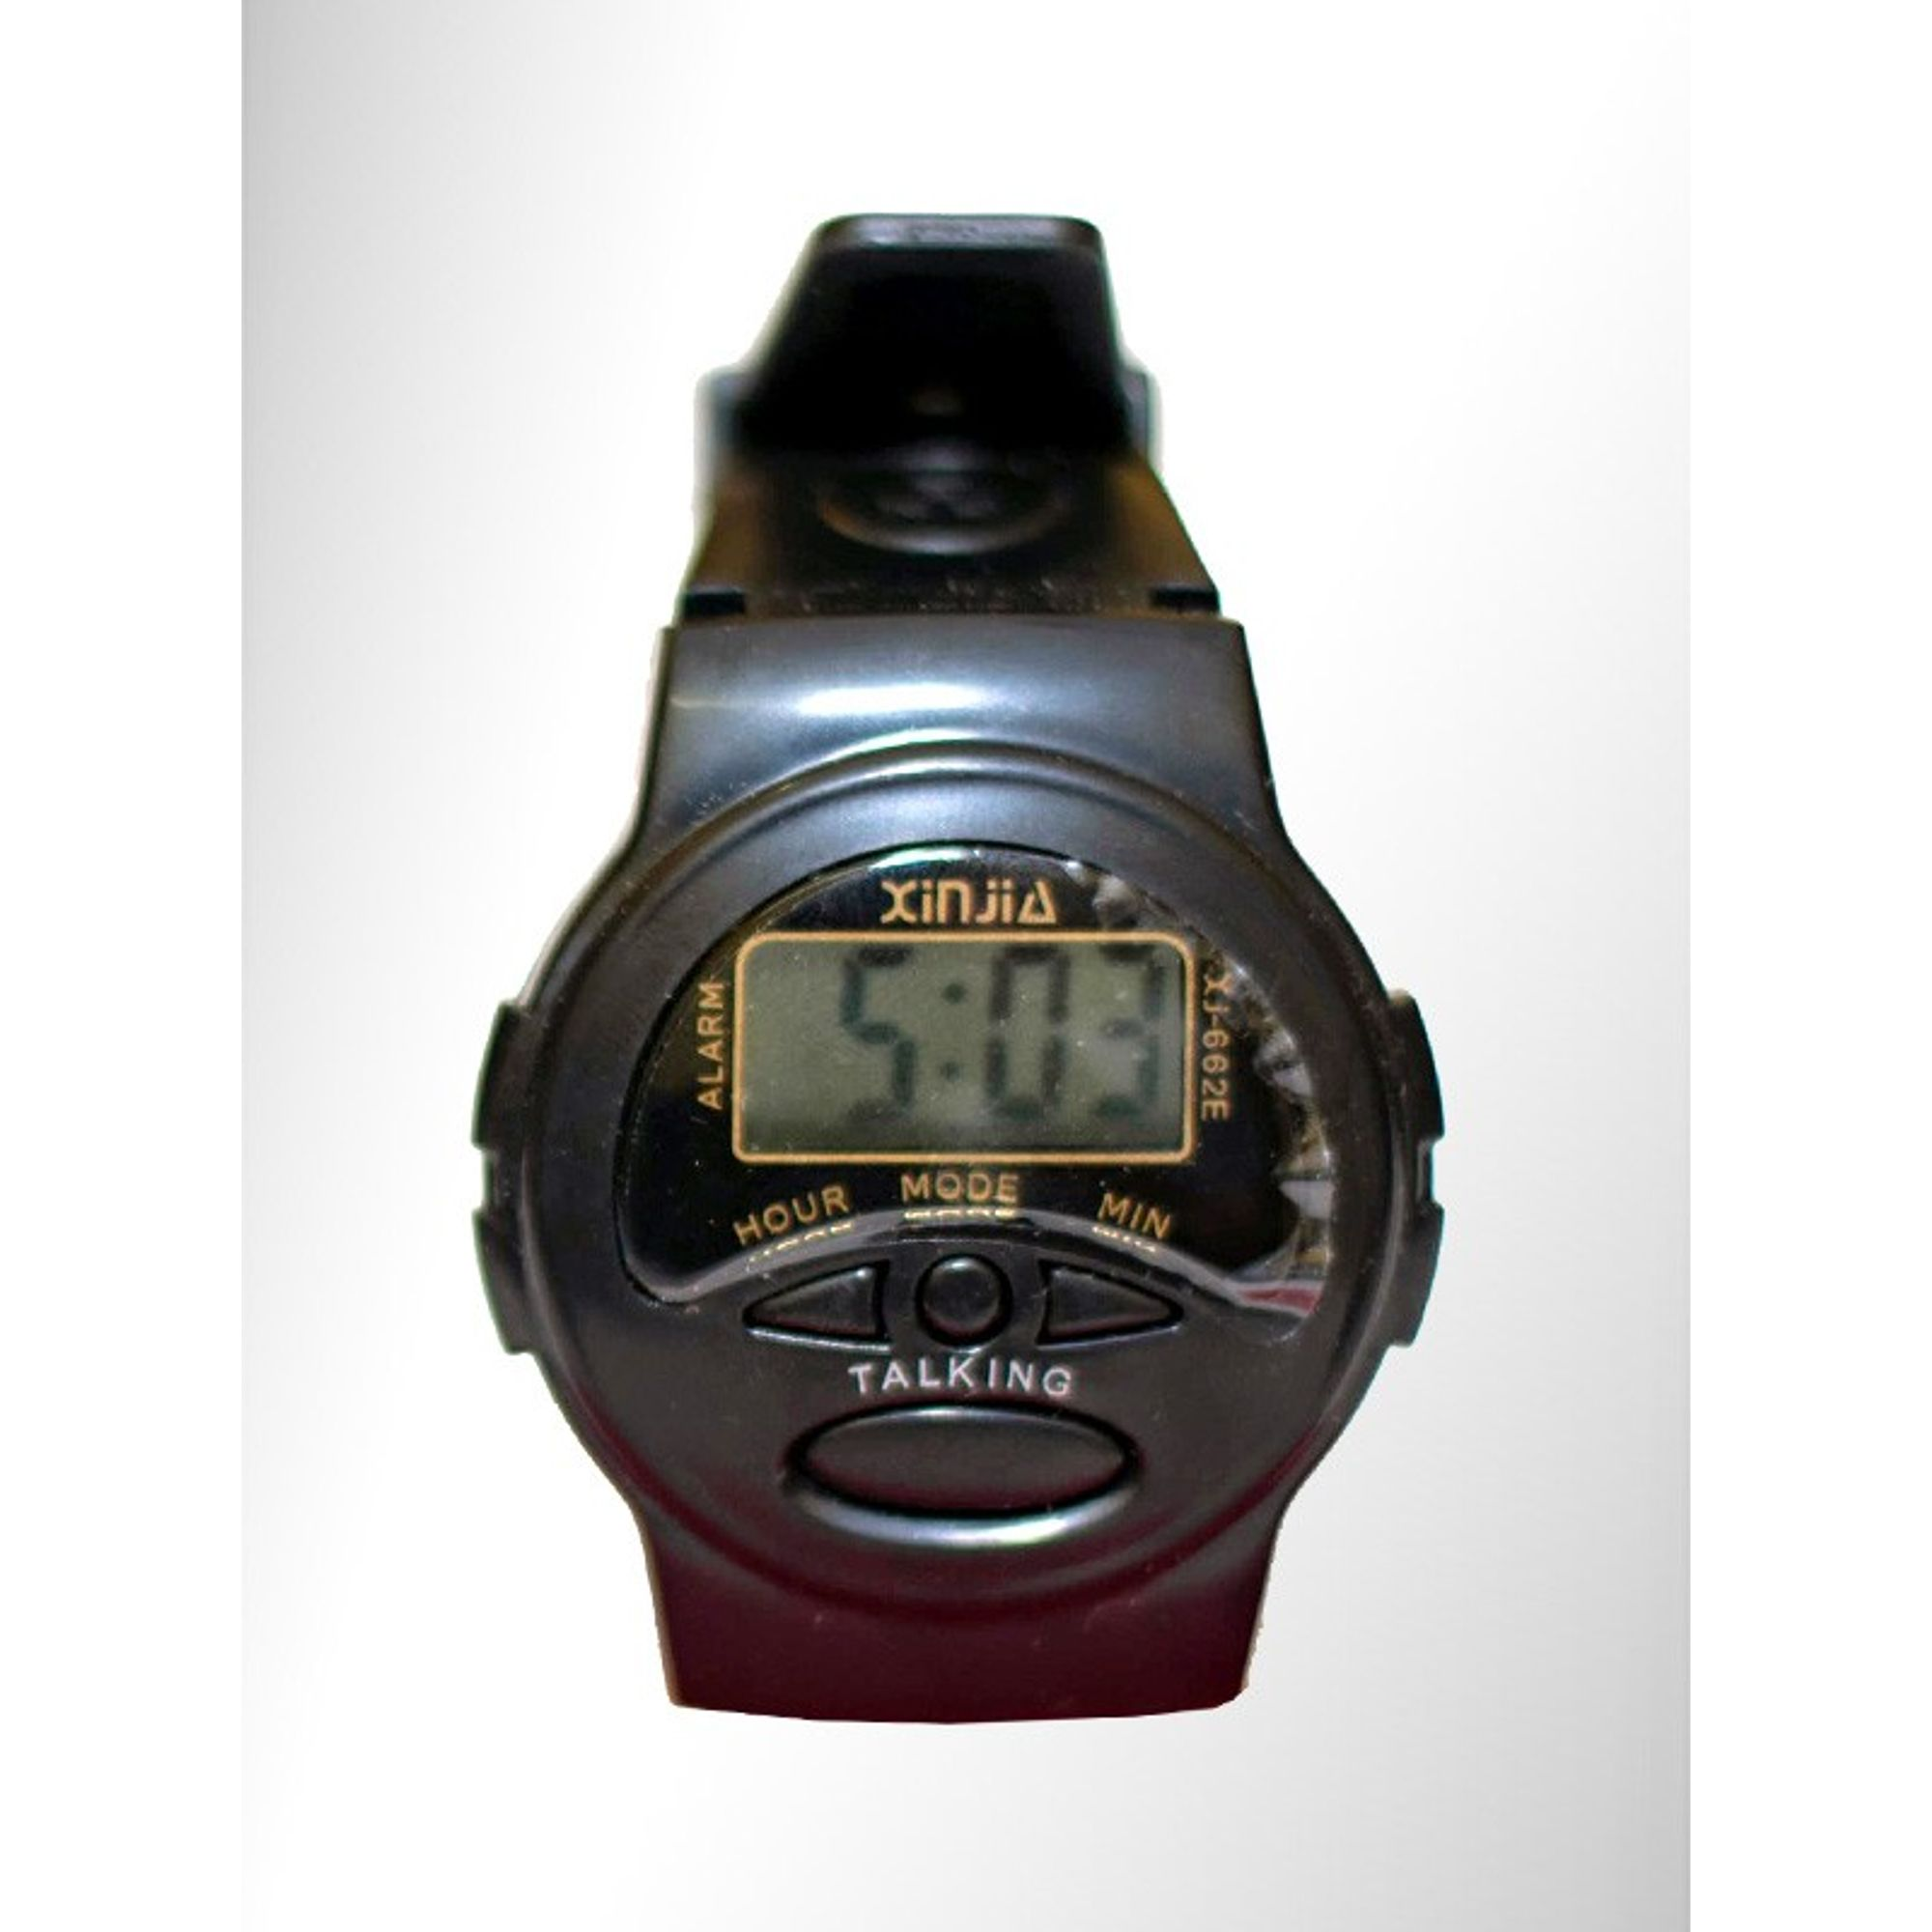 Talking Watch for Visually Impaired